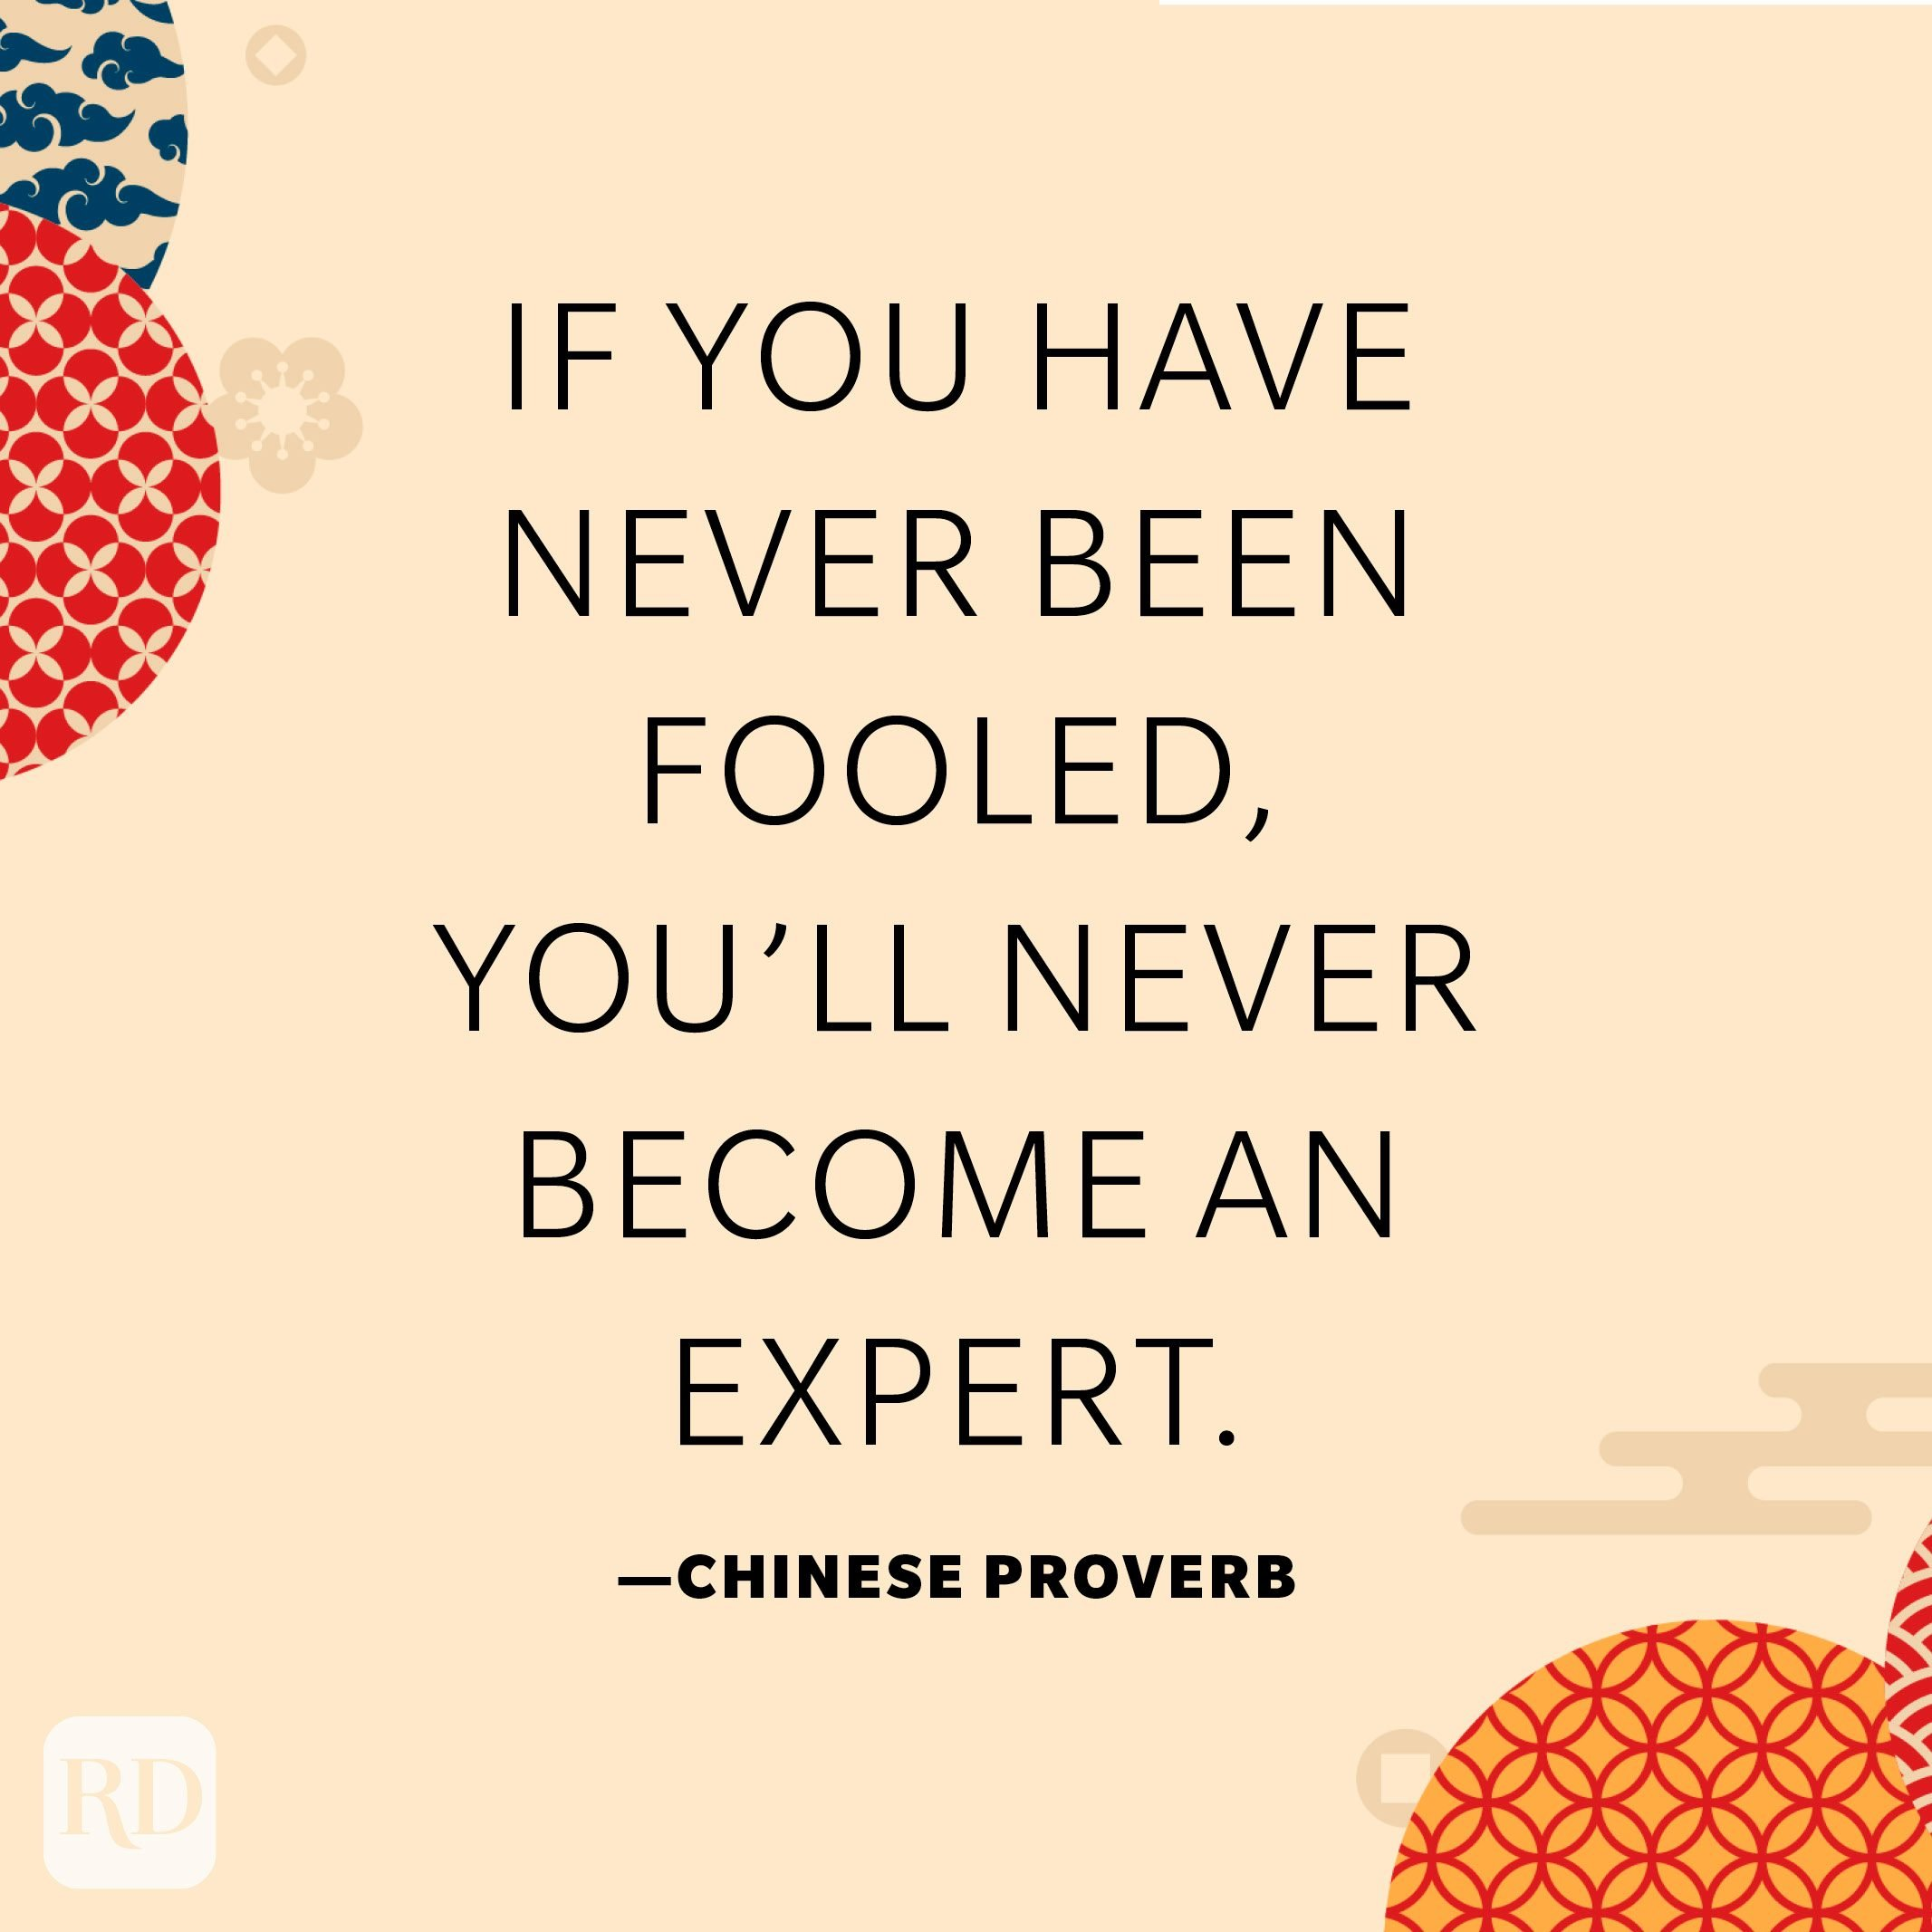 If you have never been fooled, you'll never become an expert.